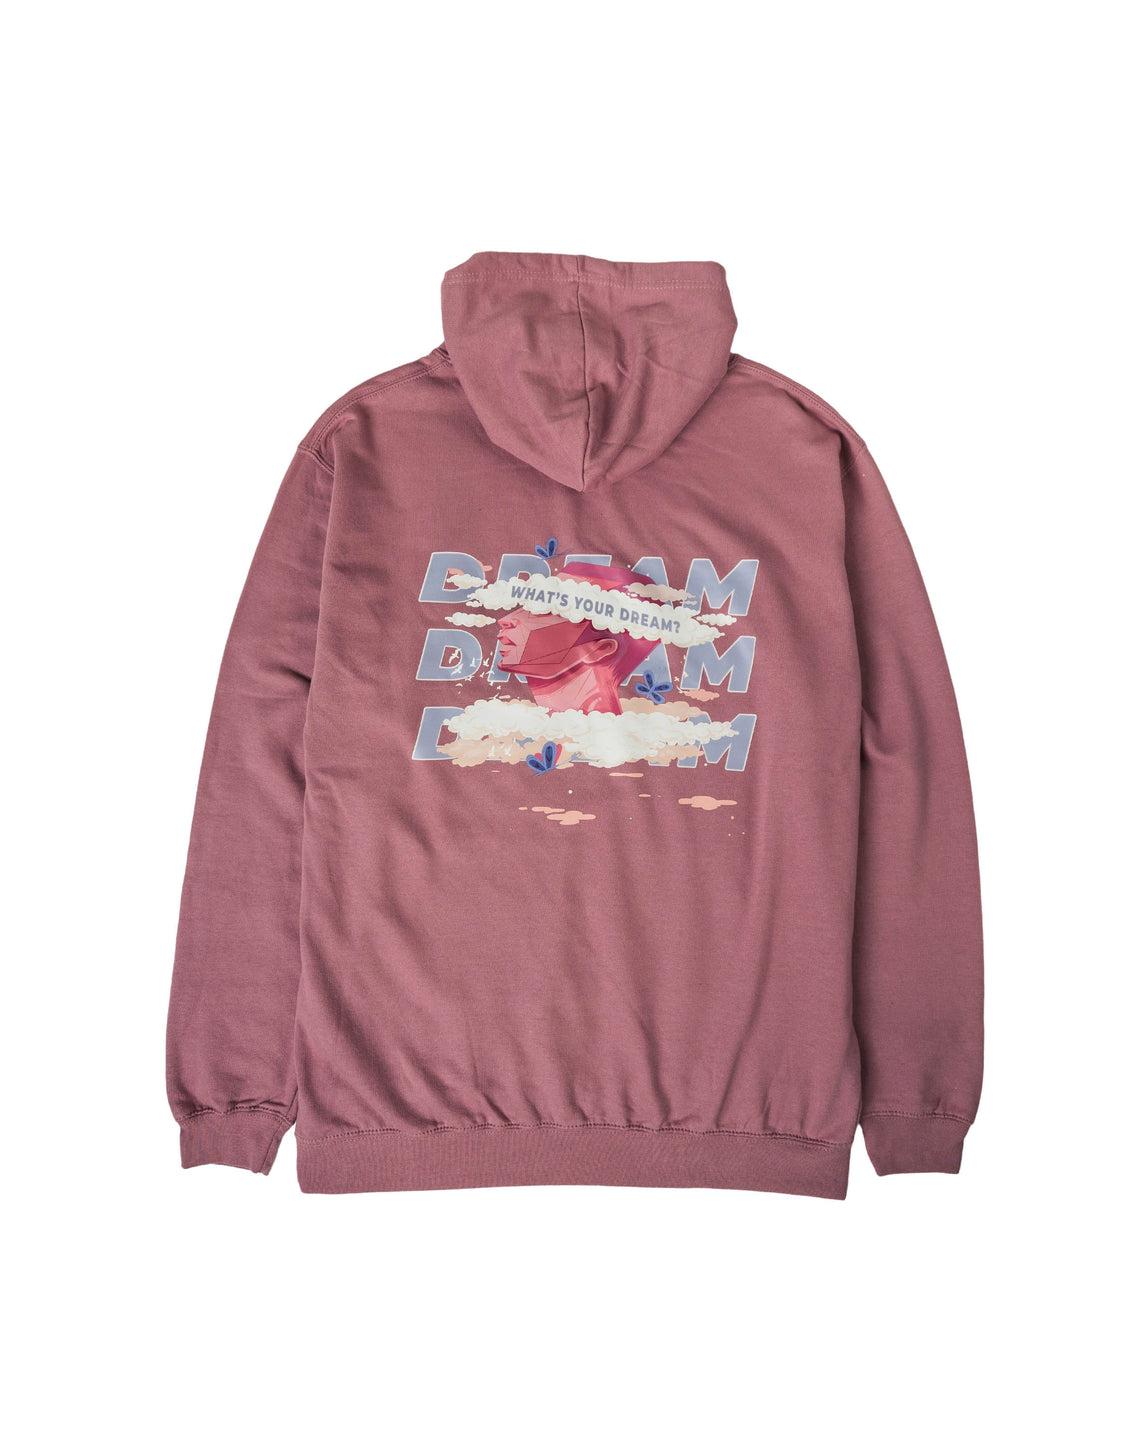 Dusty Dream Hoodie: Art - OutsideIn